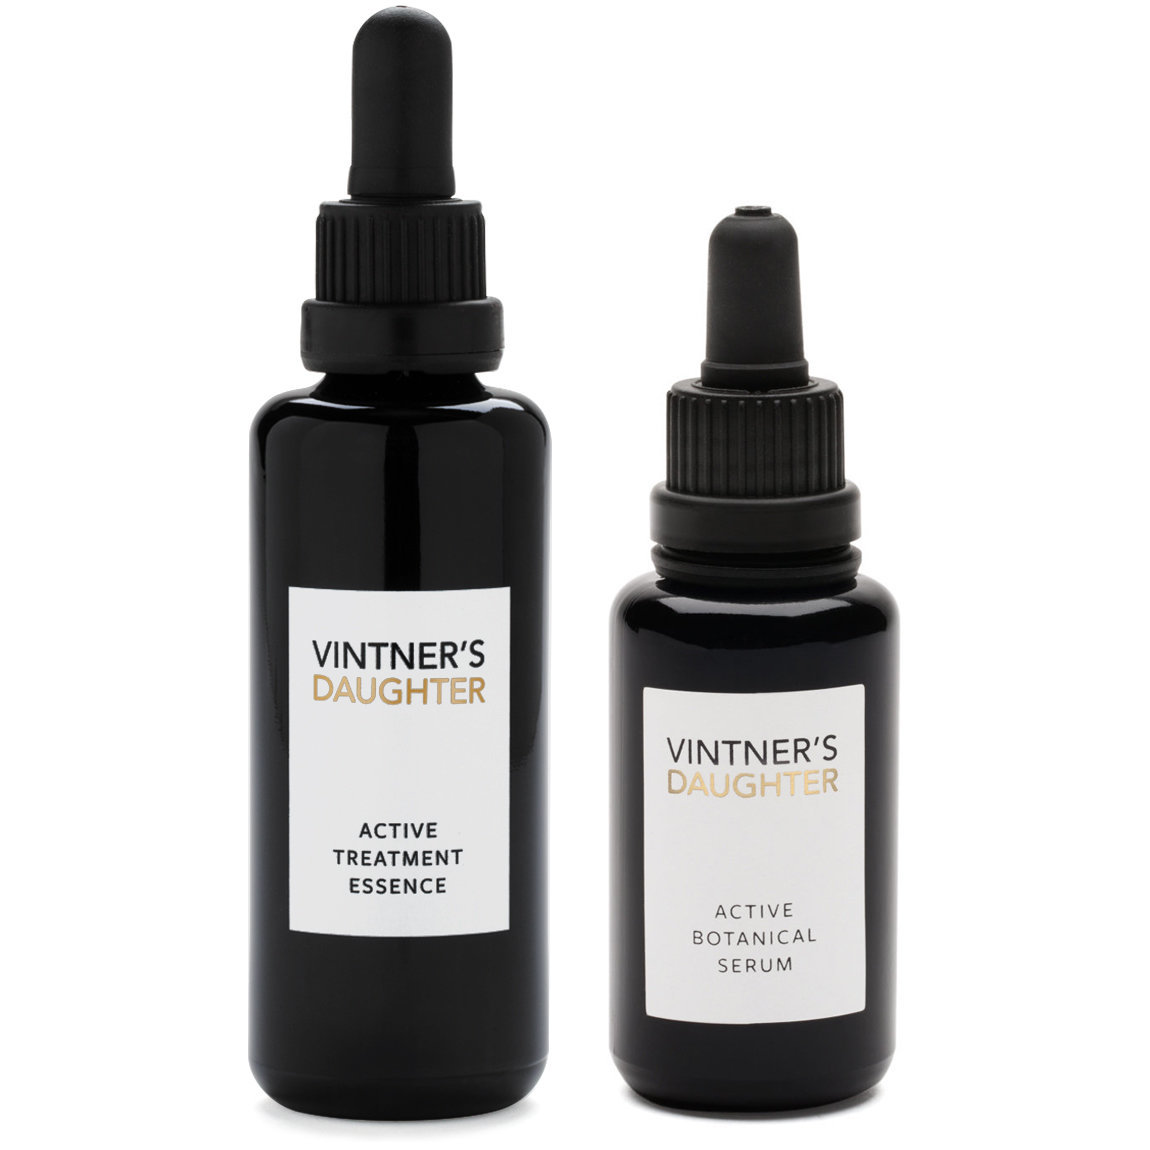 Vintner's Daughter Active Botancial Serum and Treatment Essence Bundle product smear.